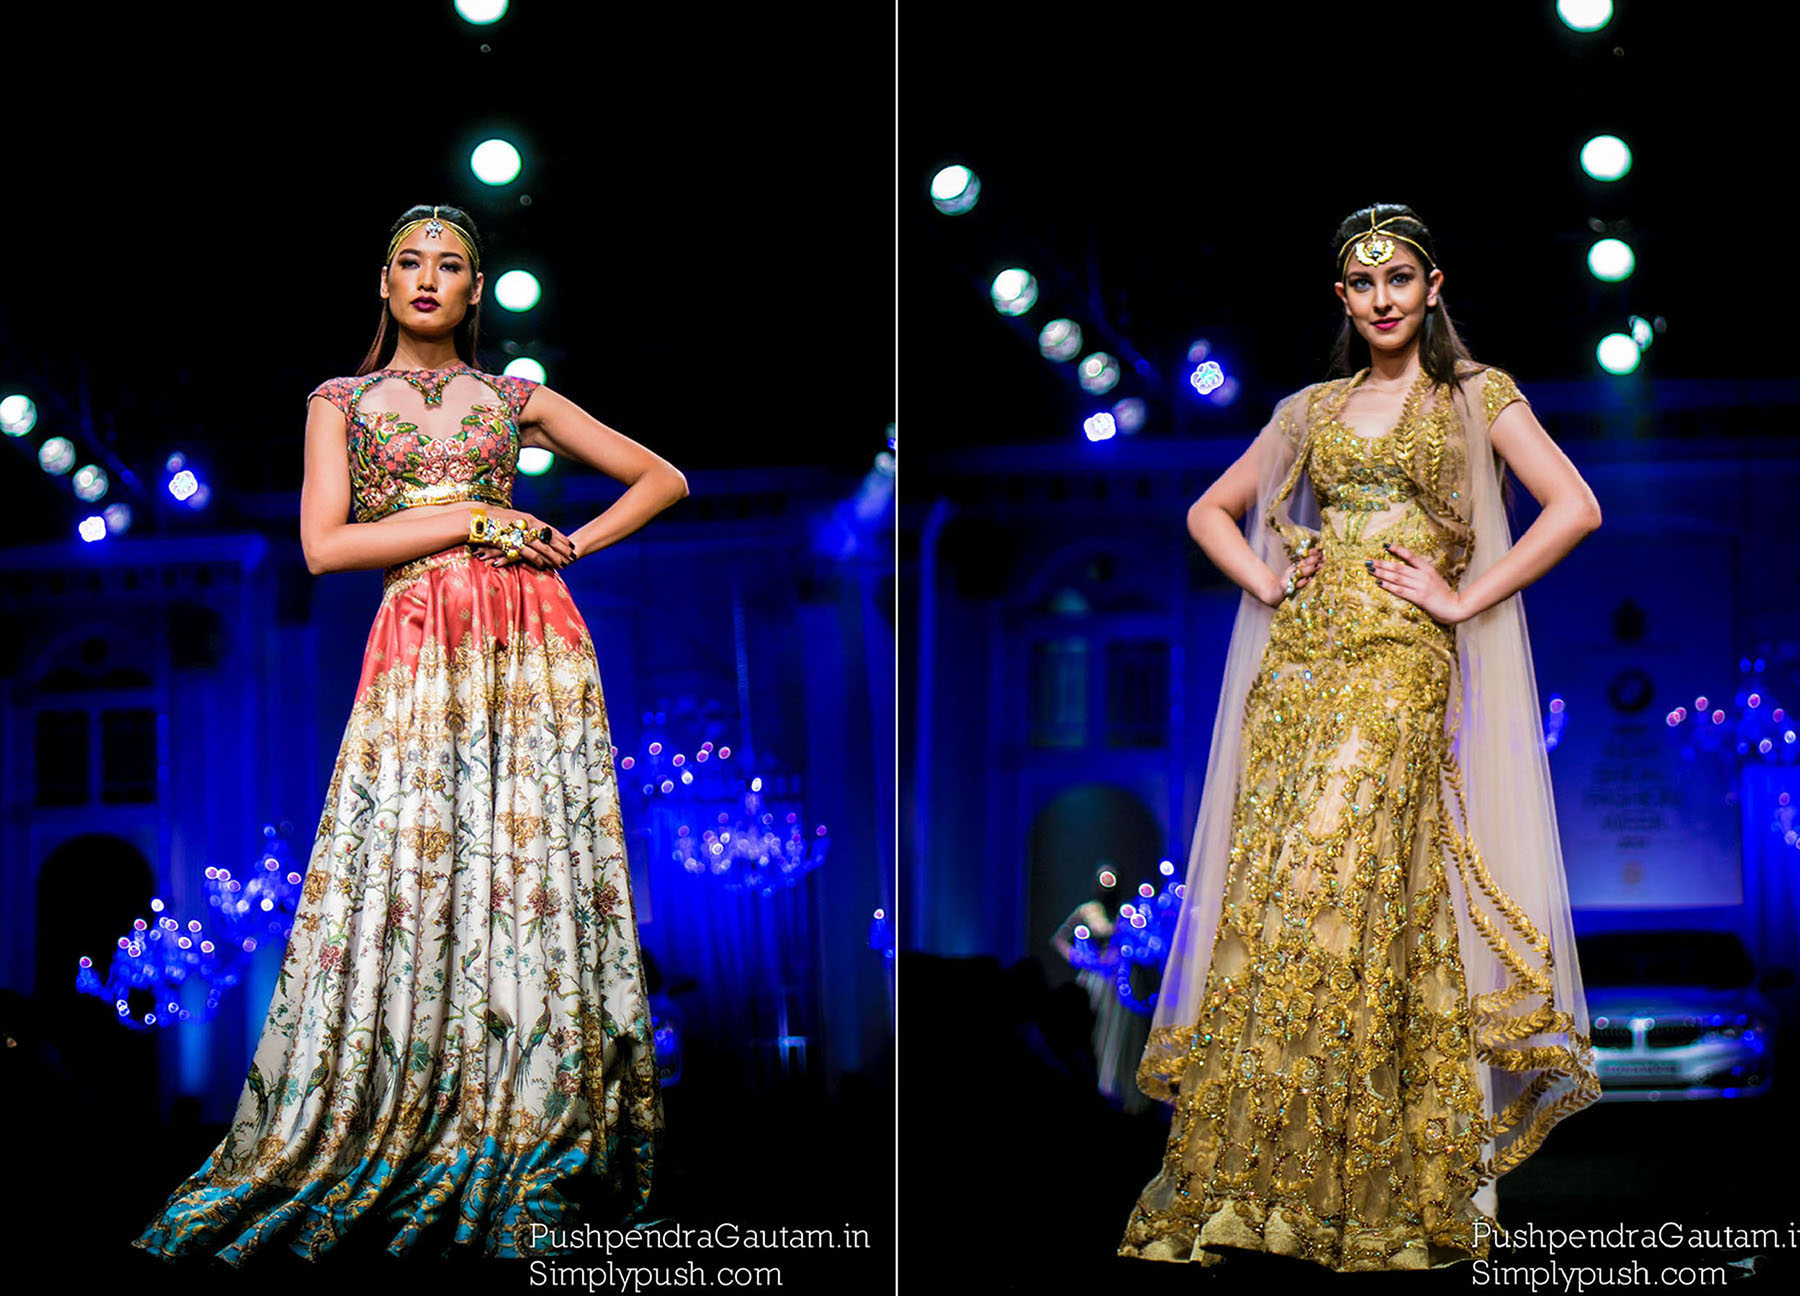 Falguni-Shane-Peacock-bmw-india-bridal-fashion-week-pushpendragautam-pics-event-photographer-india